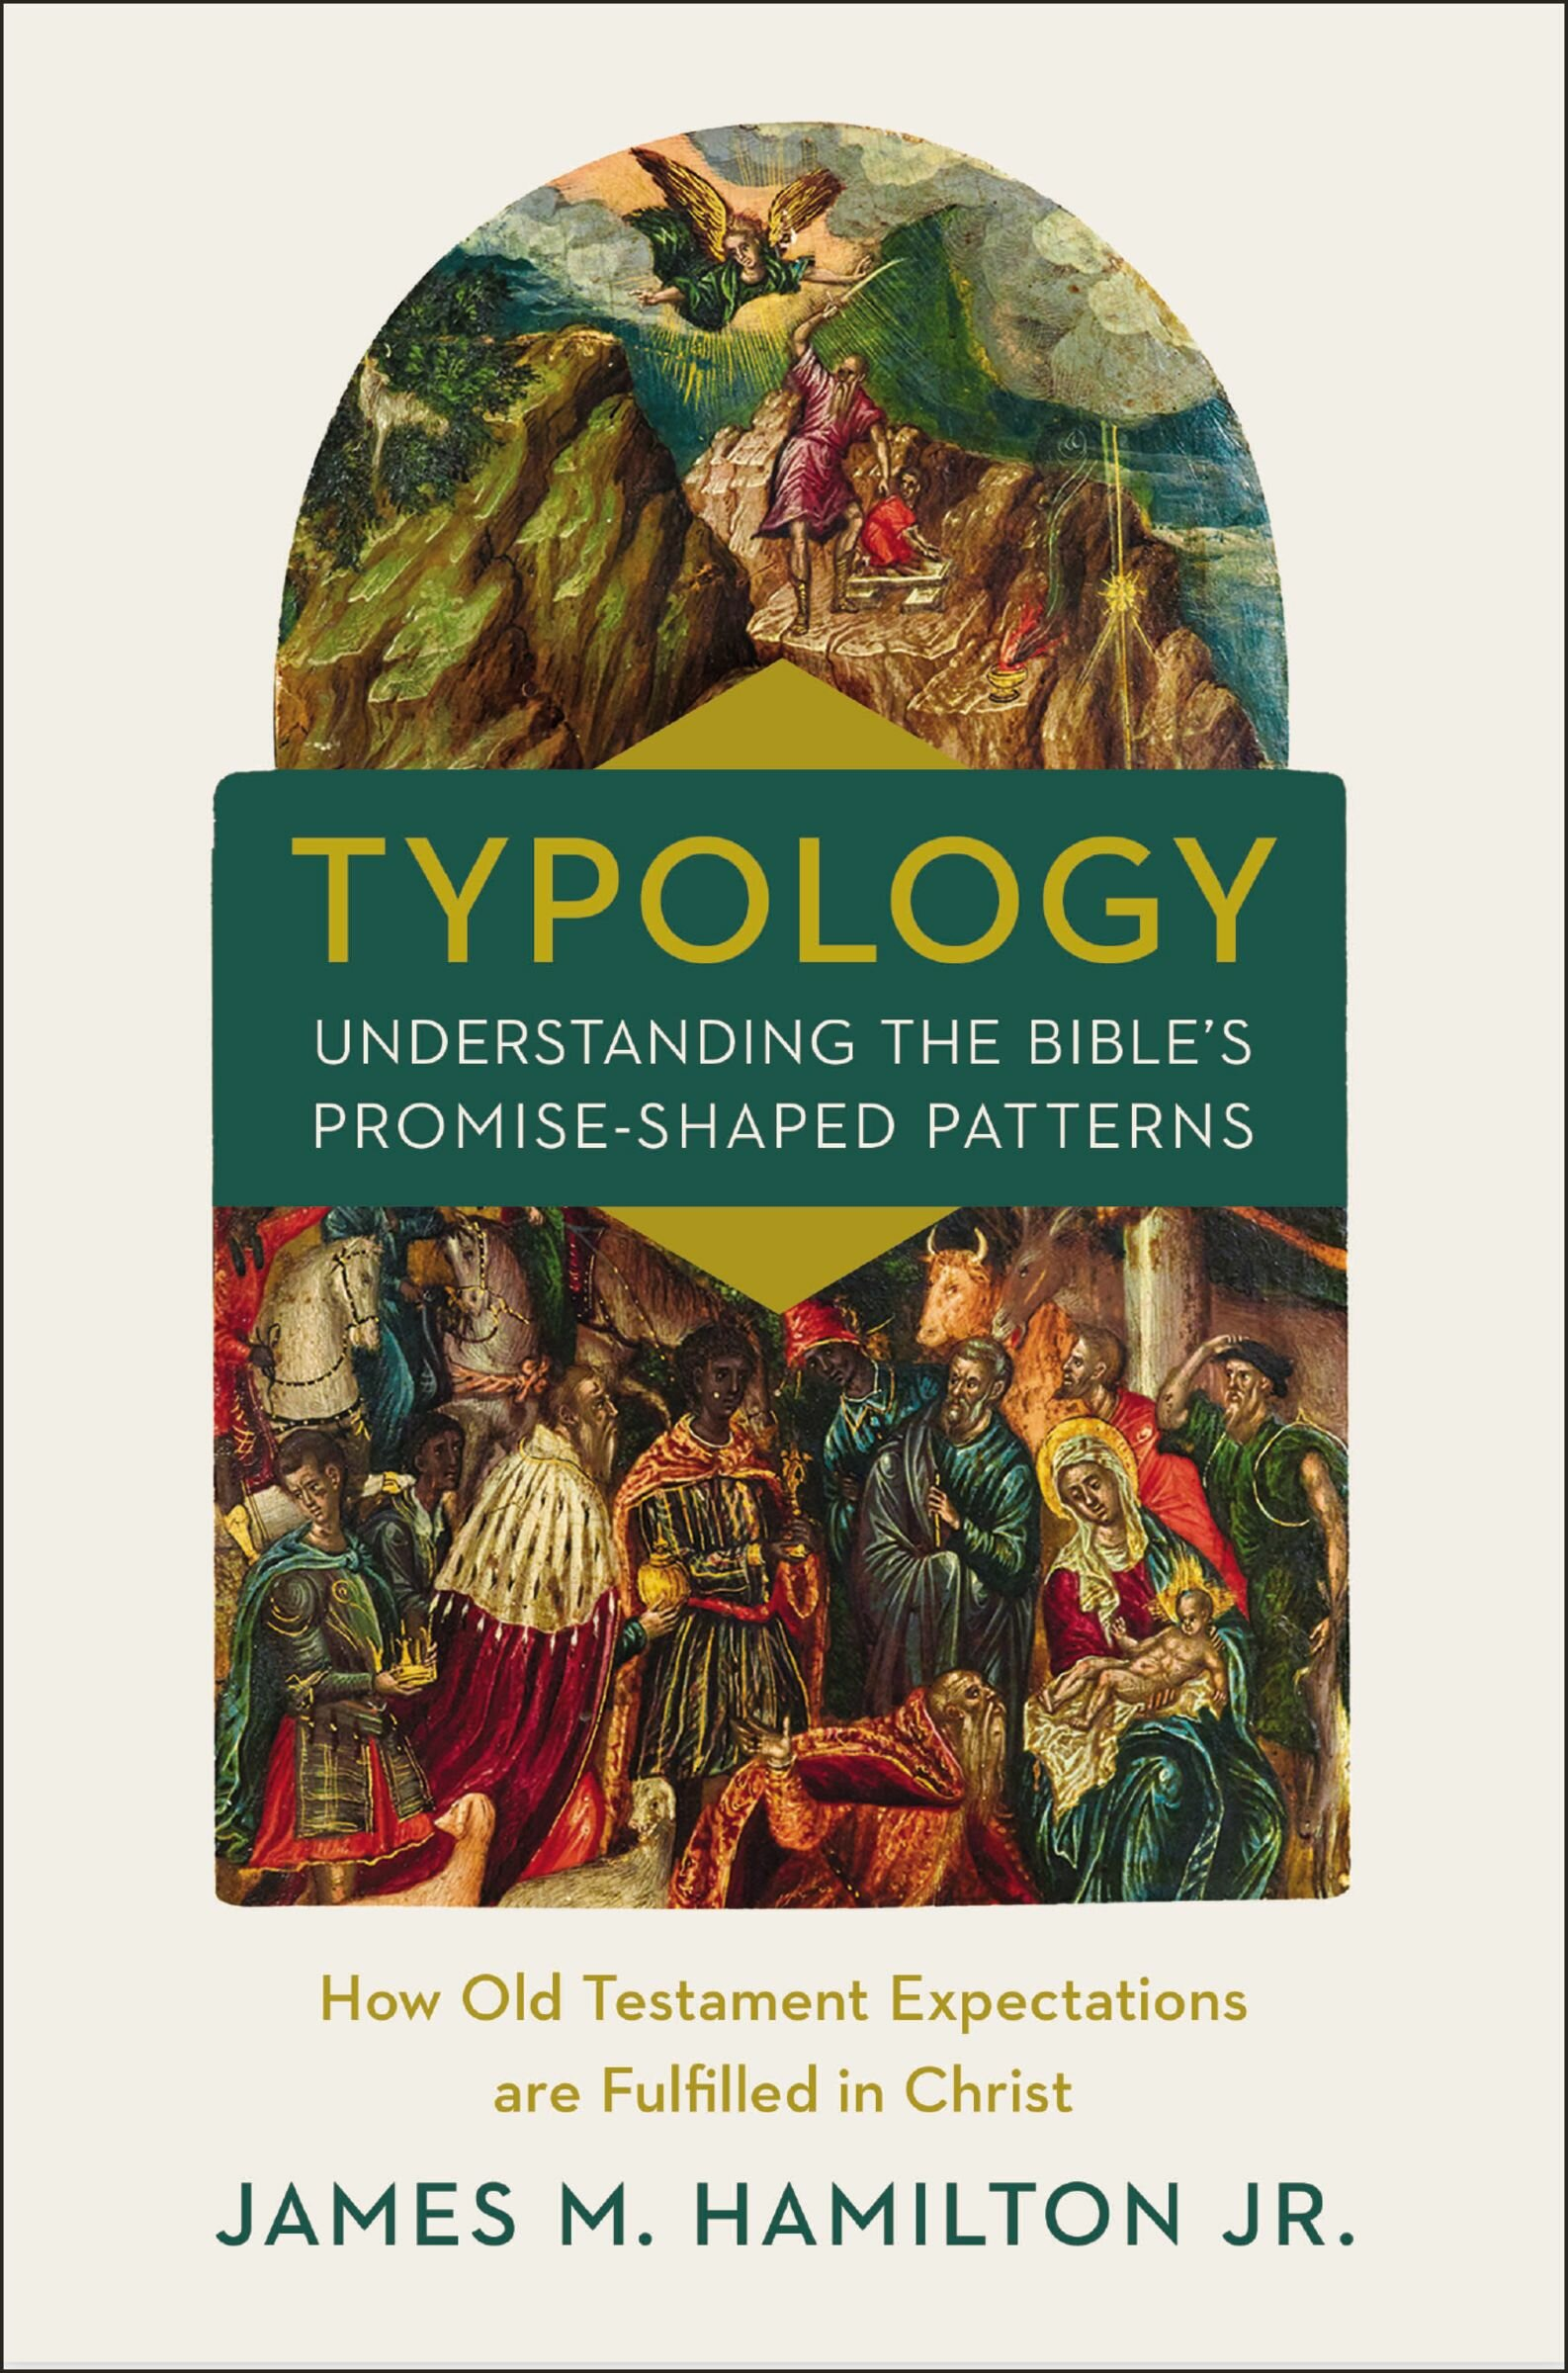 Typology-Understanding the Bible's Promise-Shaped Patterns: How Old Testament Expectations are Fulfilled in Christ